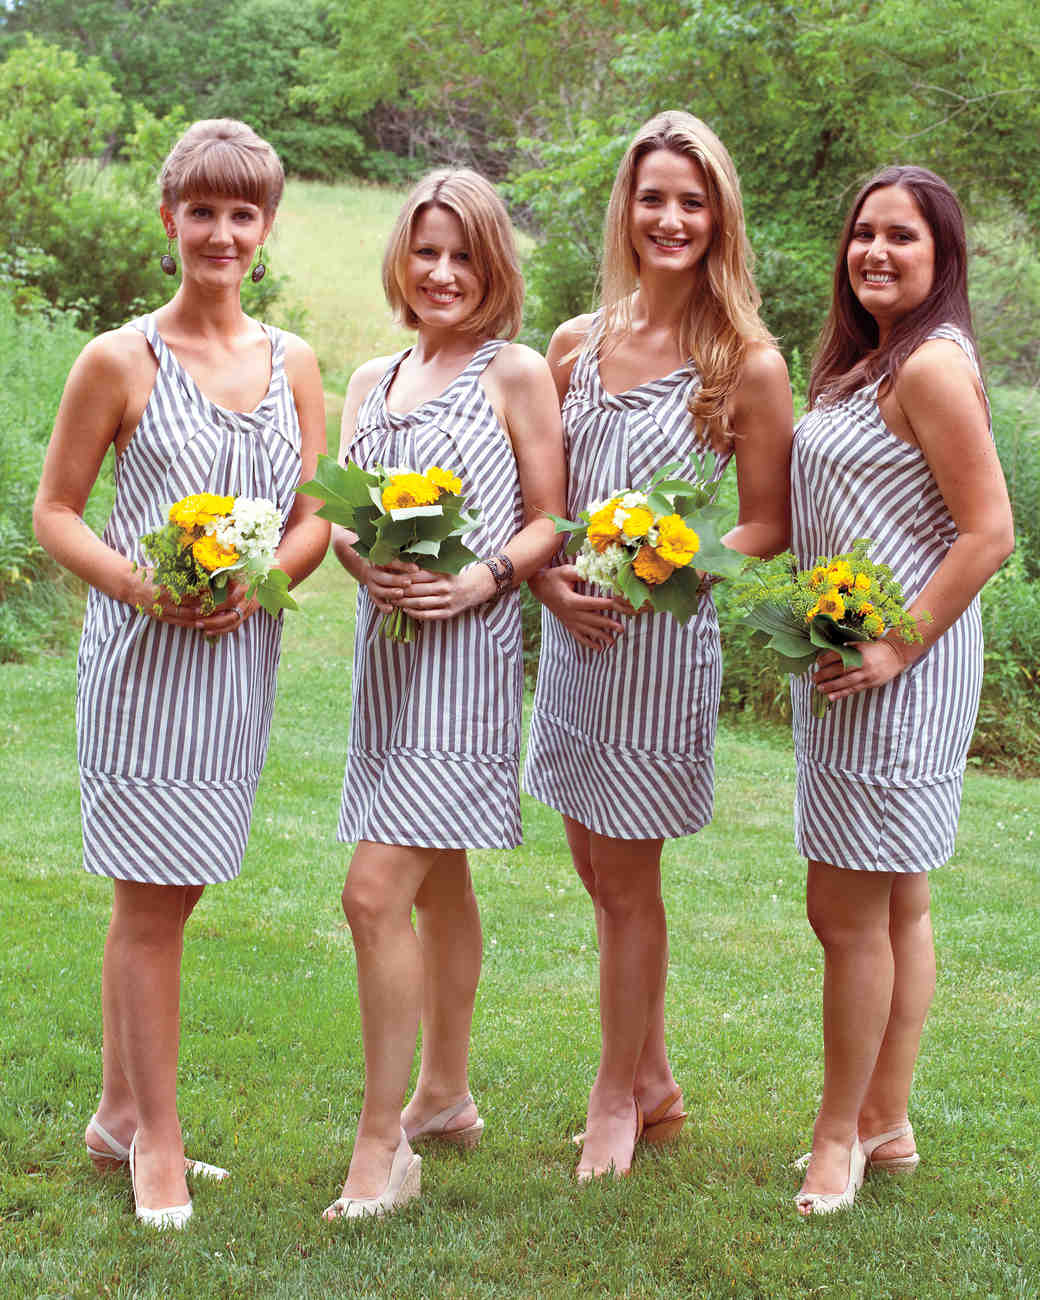 bridesmaids-0811mwd106246.jpg